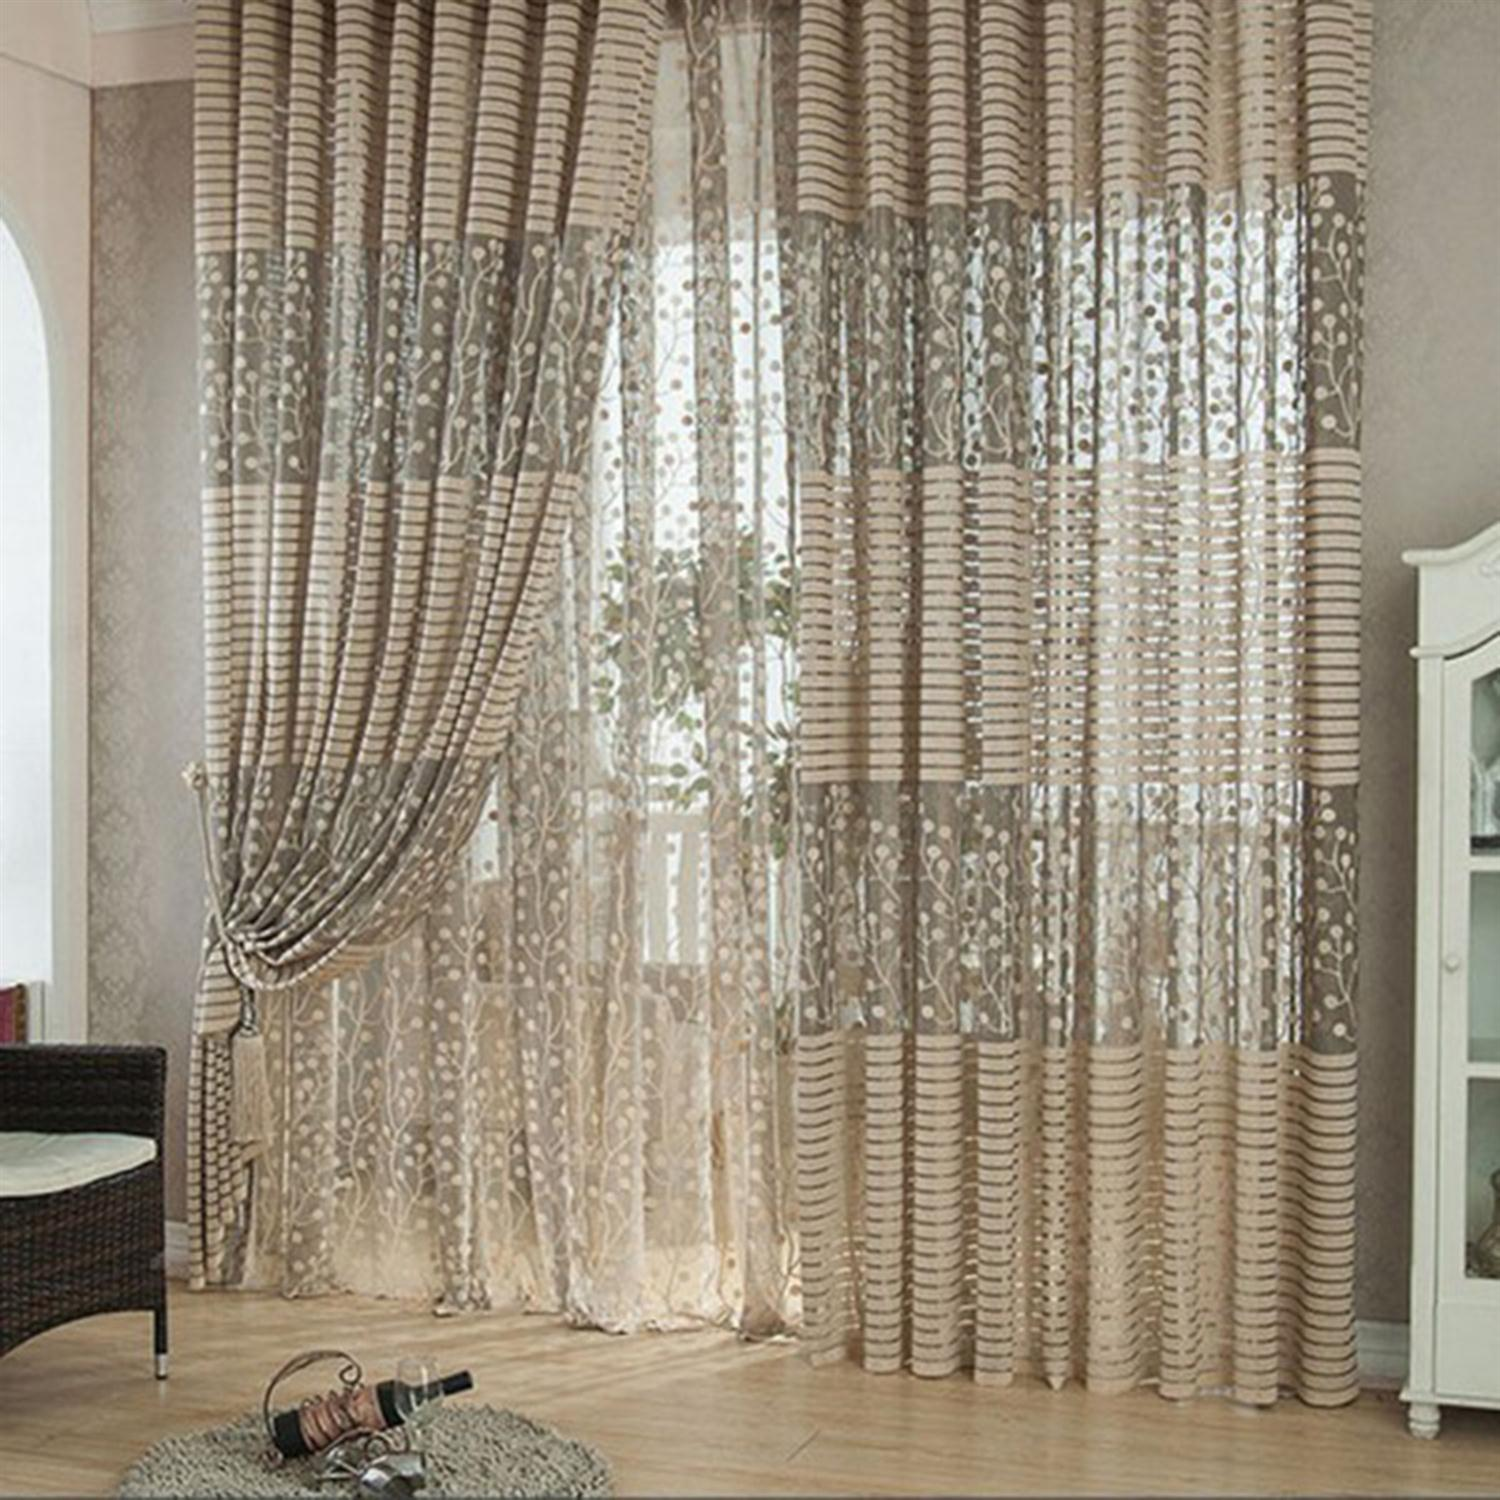 Valance Curtains For Living Room Online Get Cheap Valance Curtain Aliexpresscom Alibaba Group